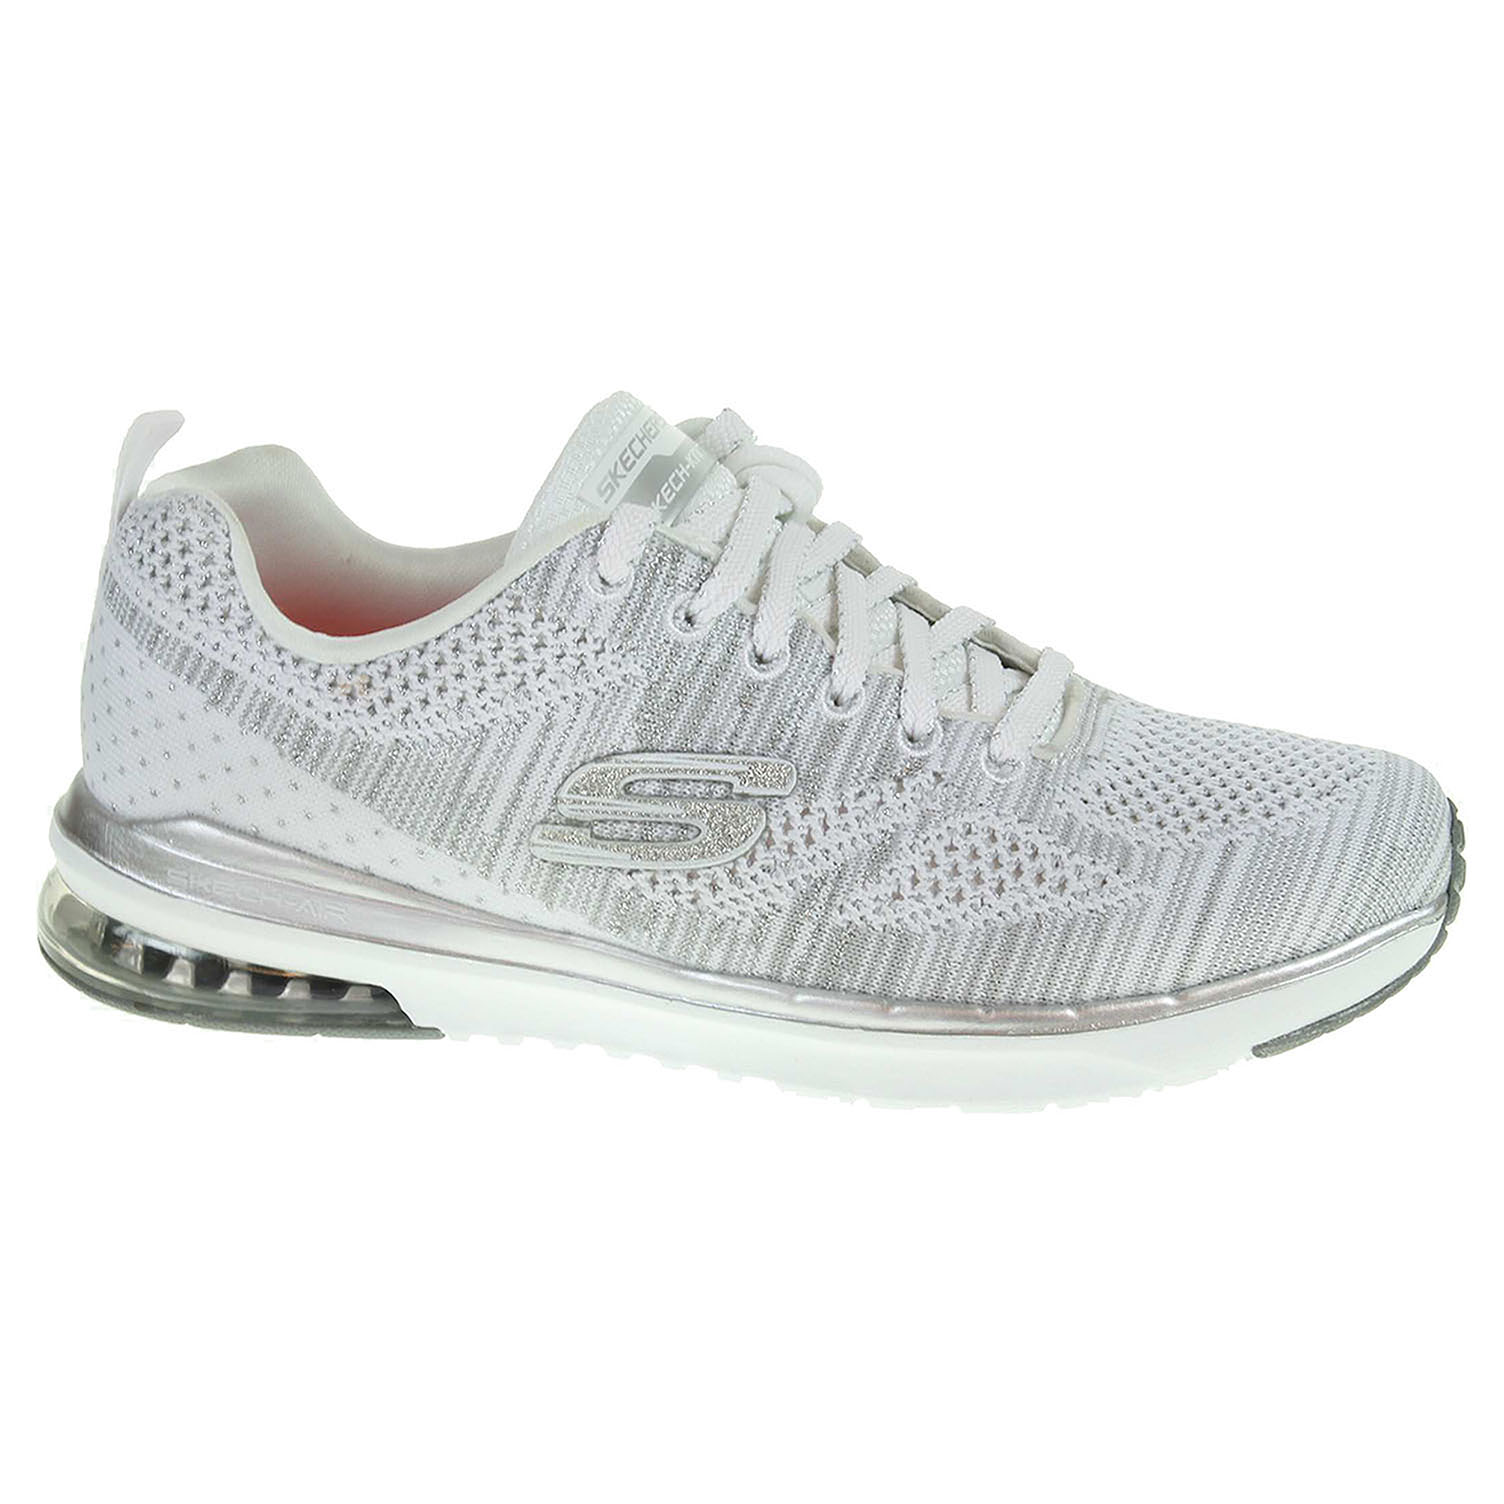 Ecco Skechers Skech-Air Infinity Stand Out white-silver 23900174